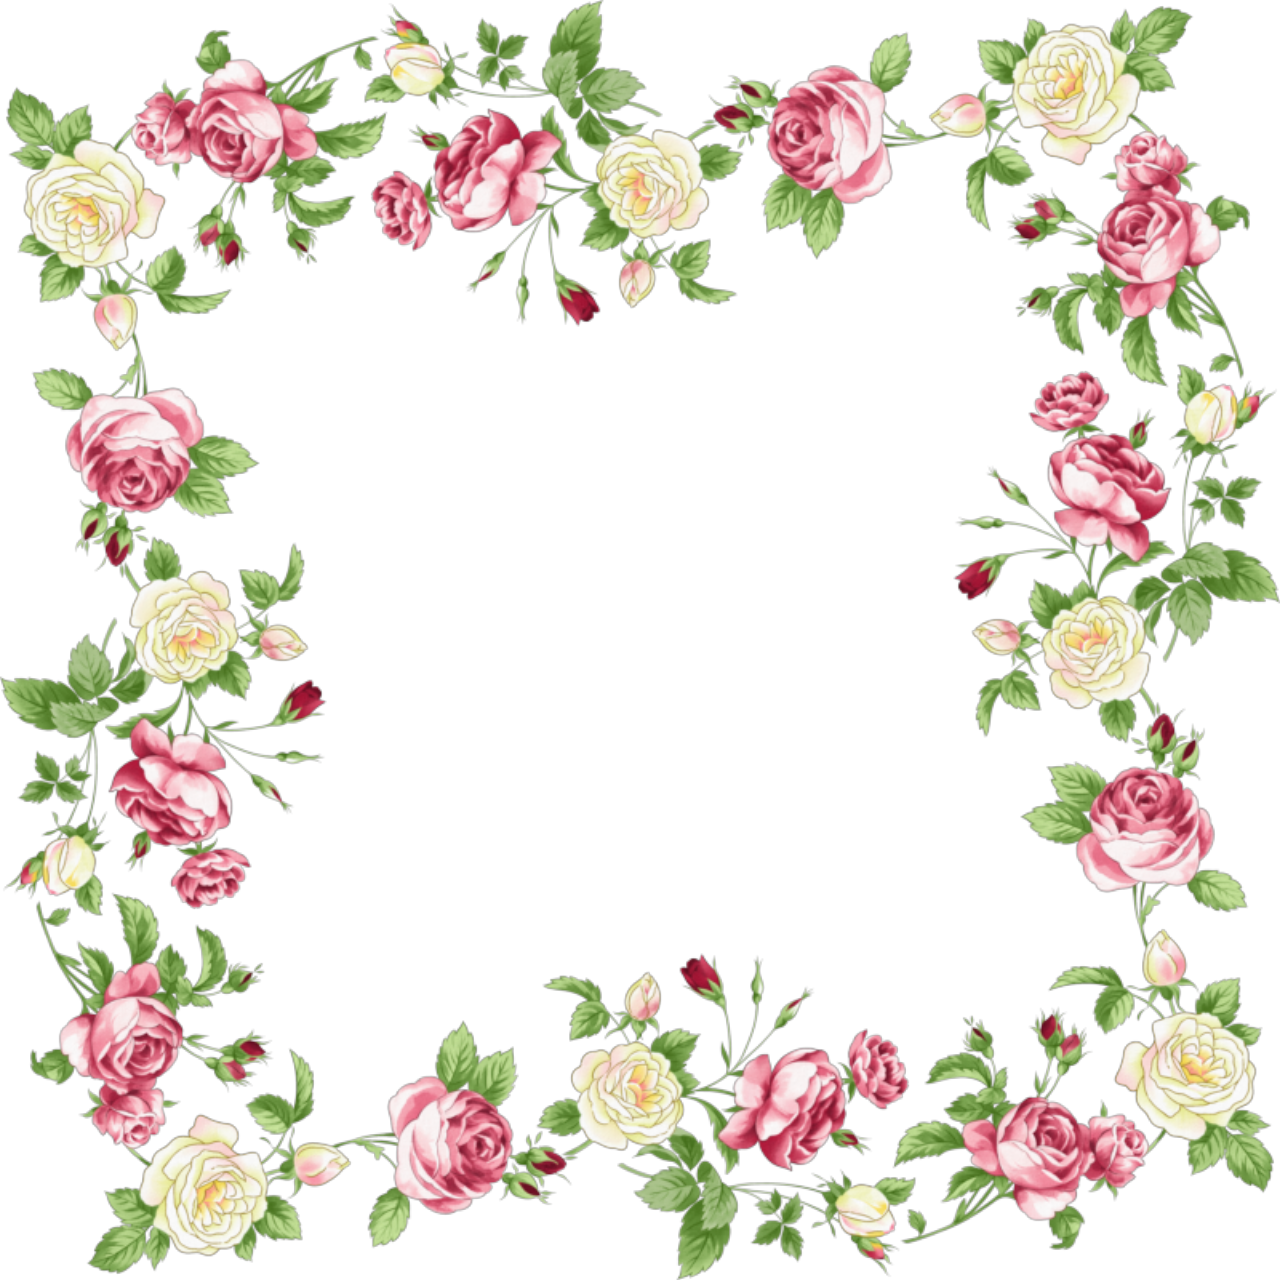 floral border png - Pesquisa Google - Flowers Borders PNG